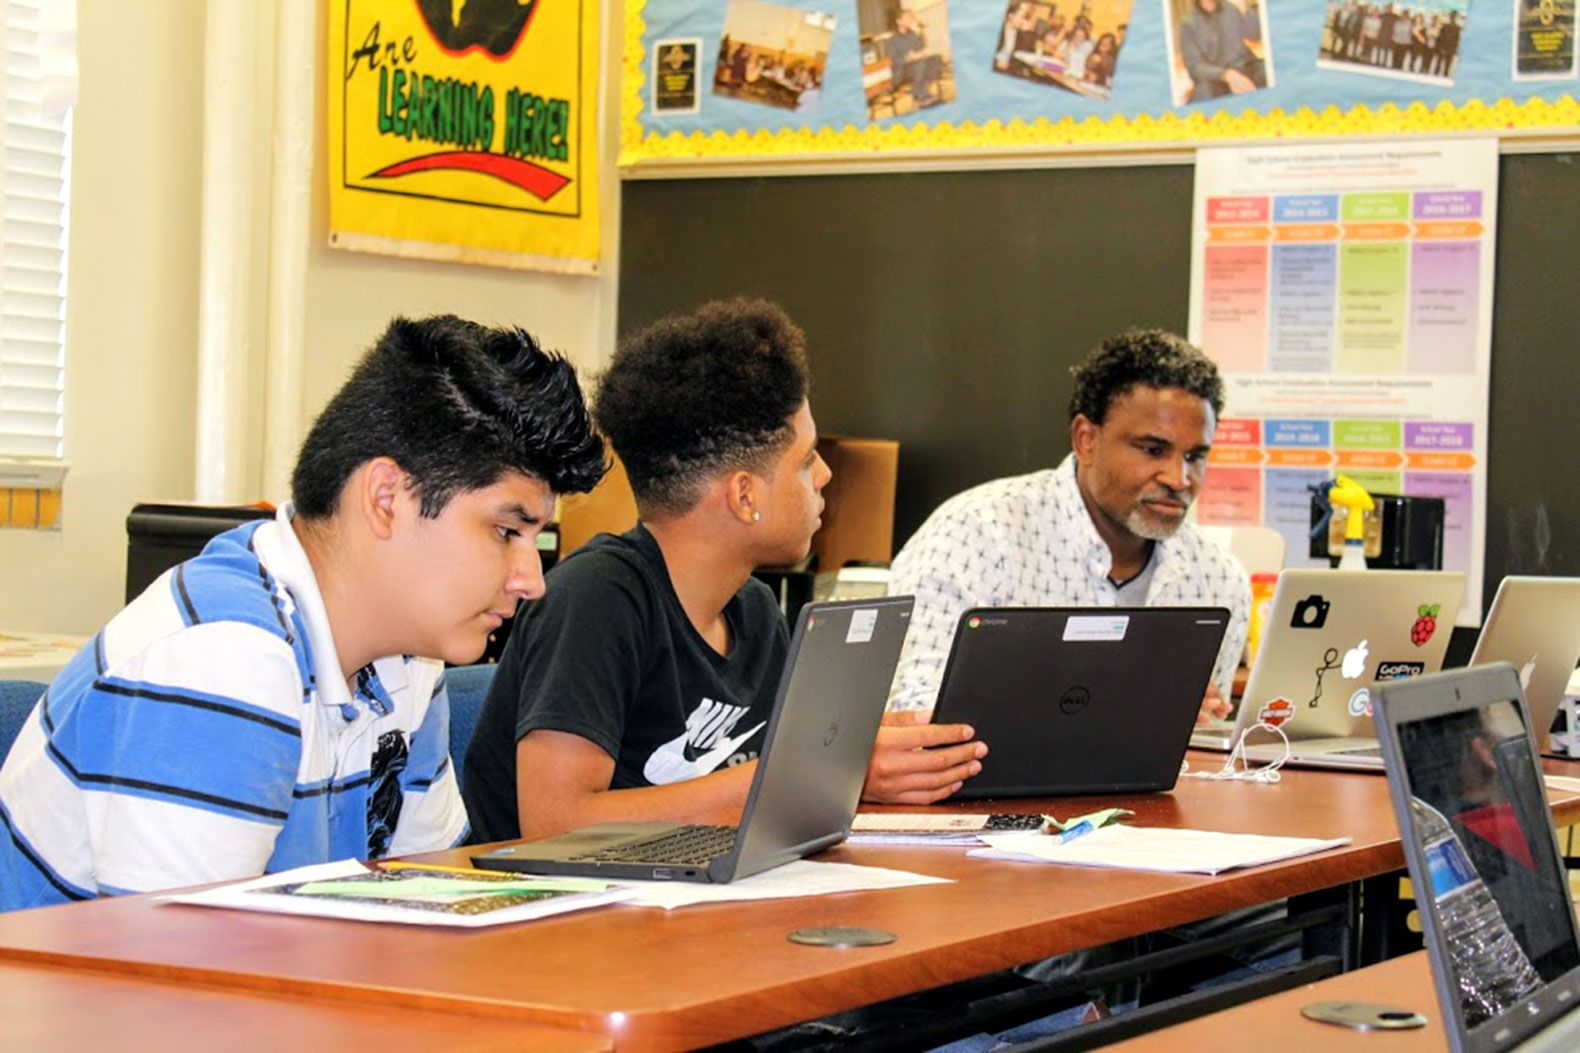 Social studies teacher Troy Grant works with students at an international high school in Maryland. Grant says the certification process dramatically changed how he teaches.